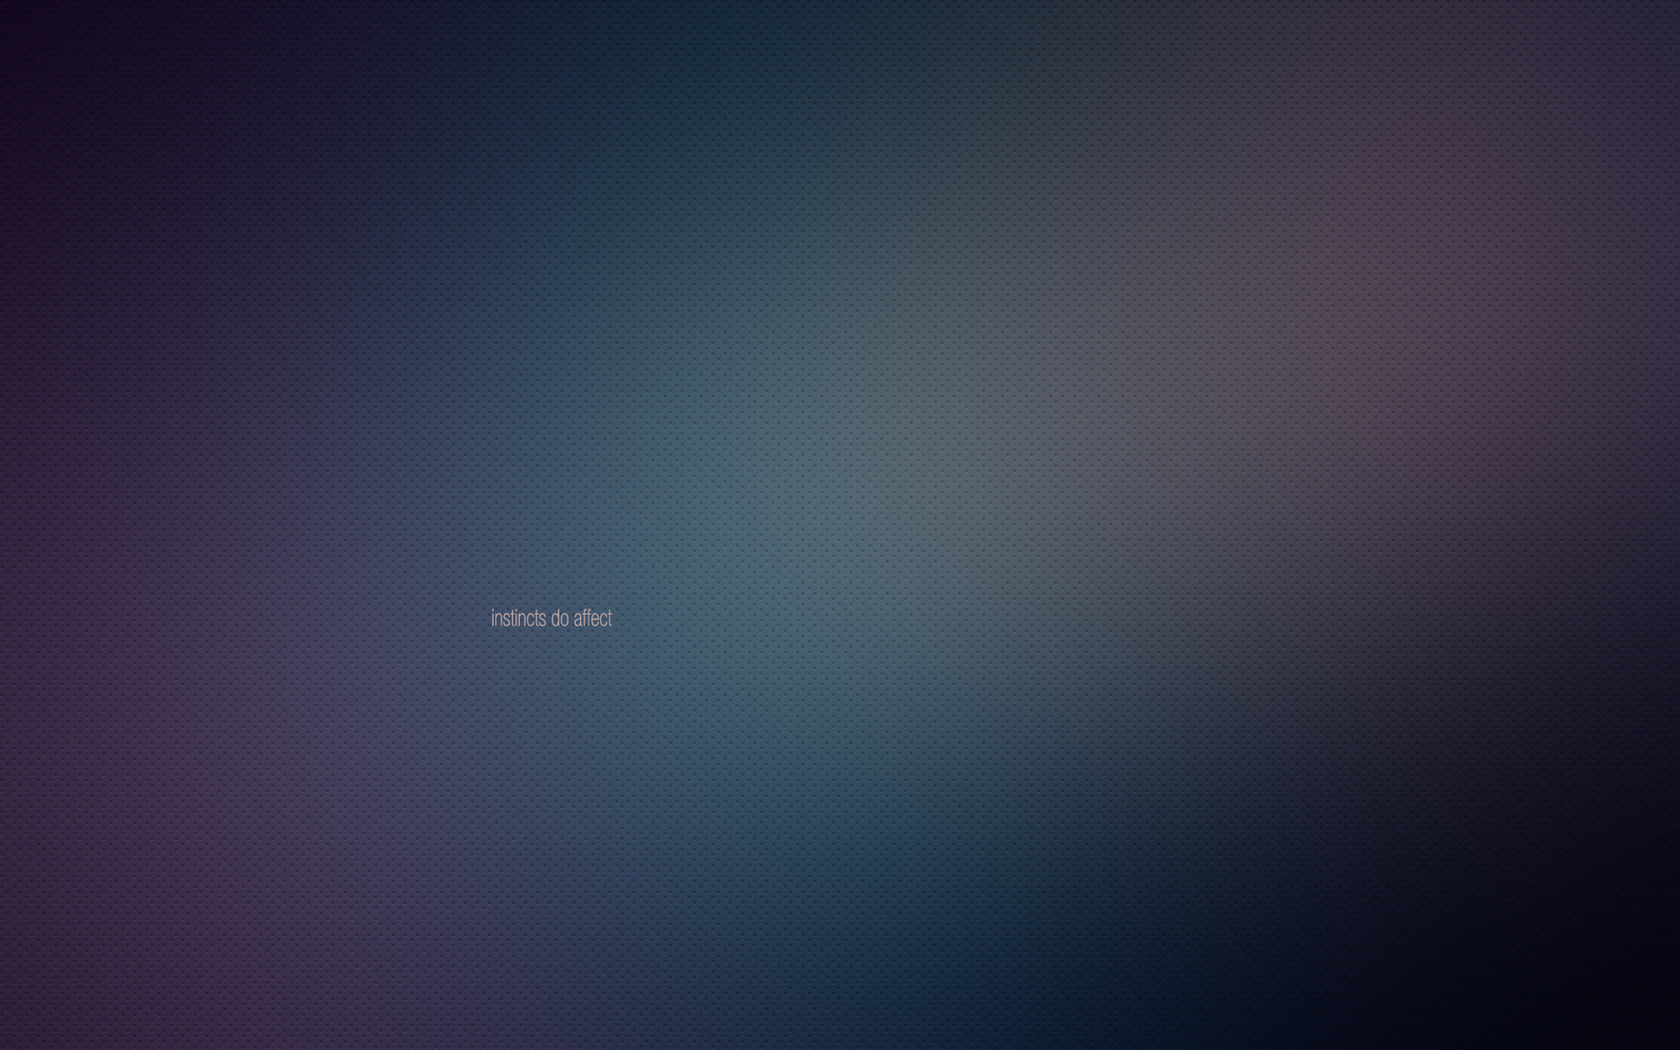 blue minimalistic gaussian Blur HD Wallpaper